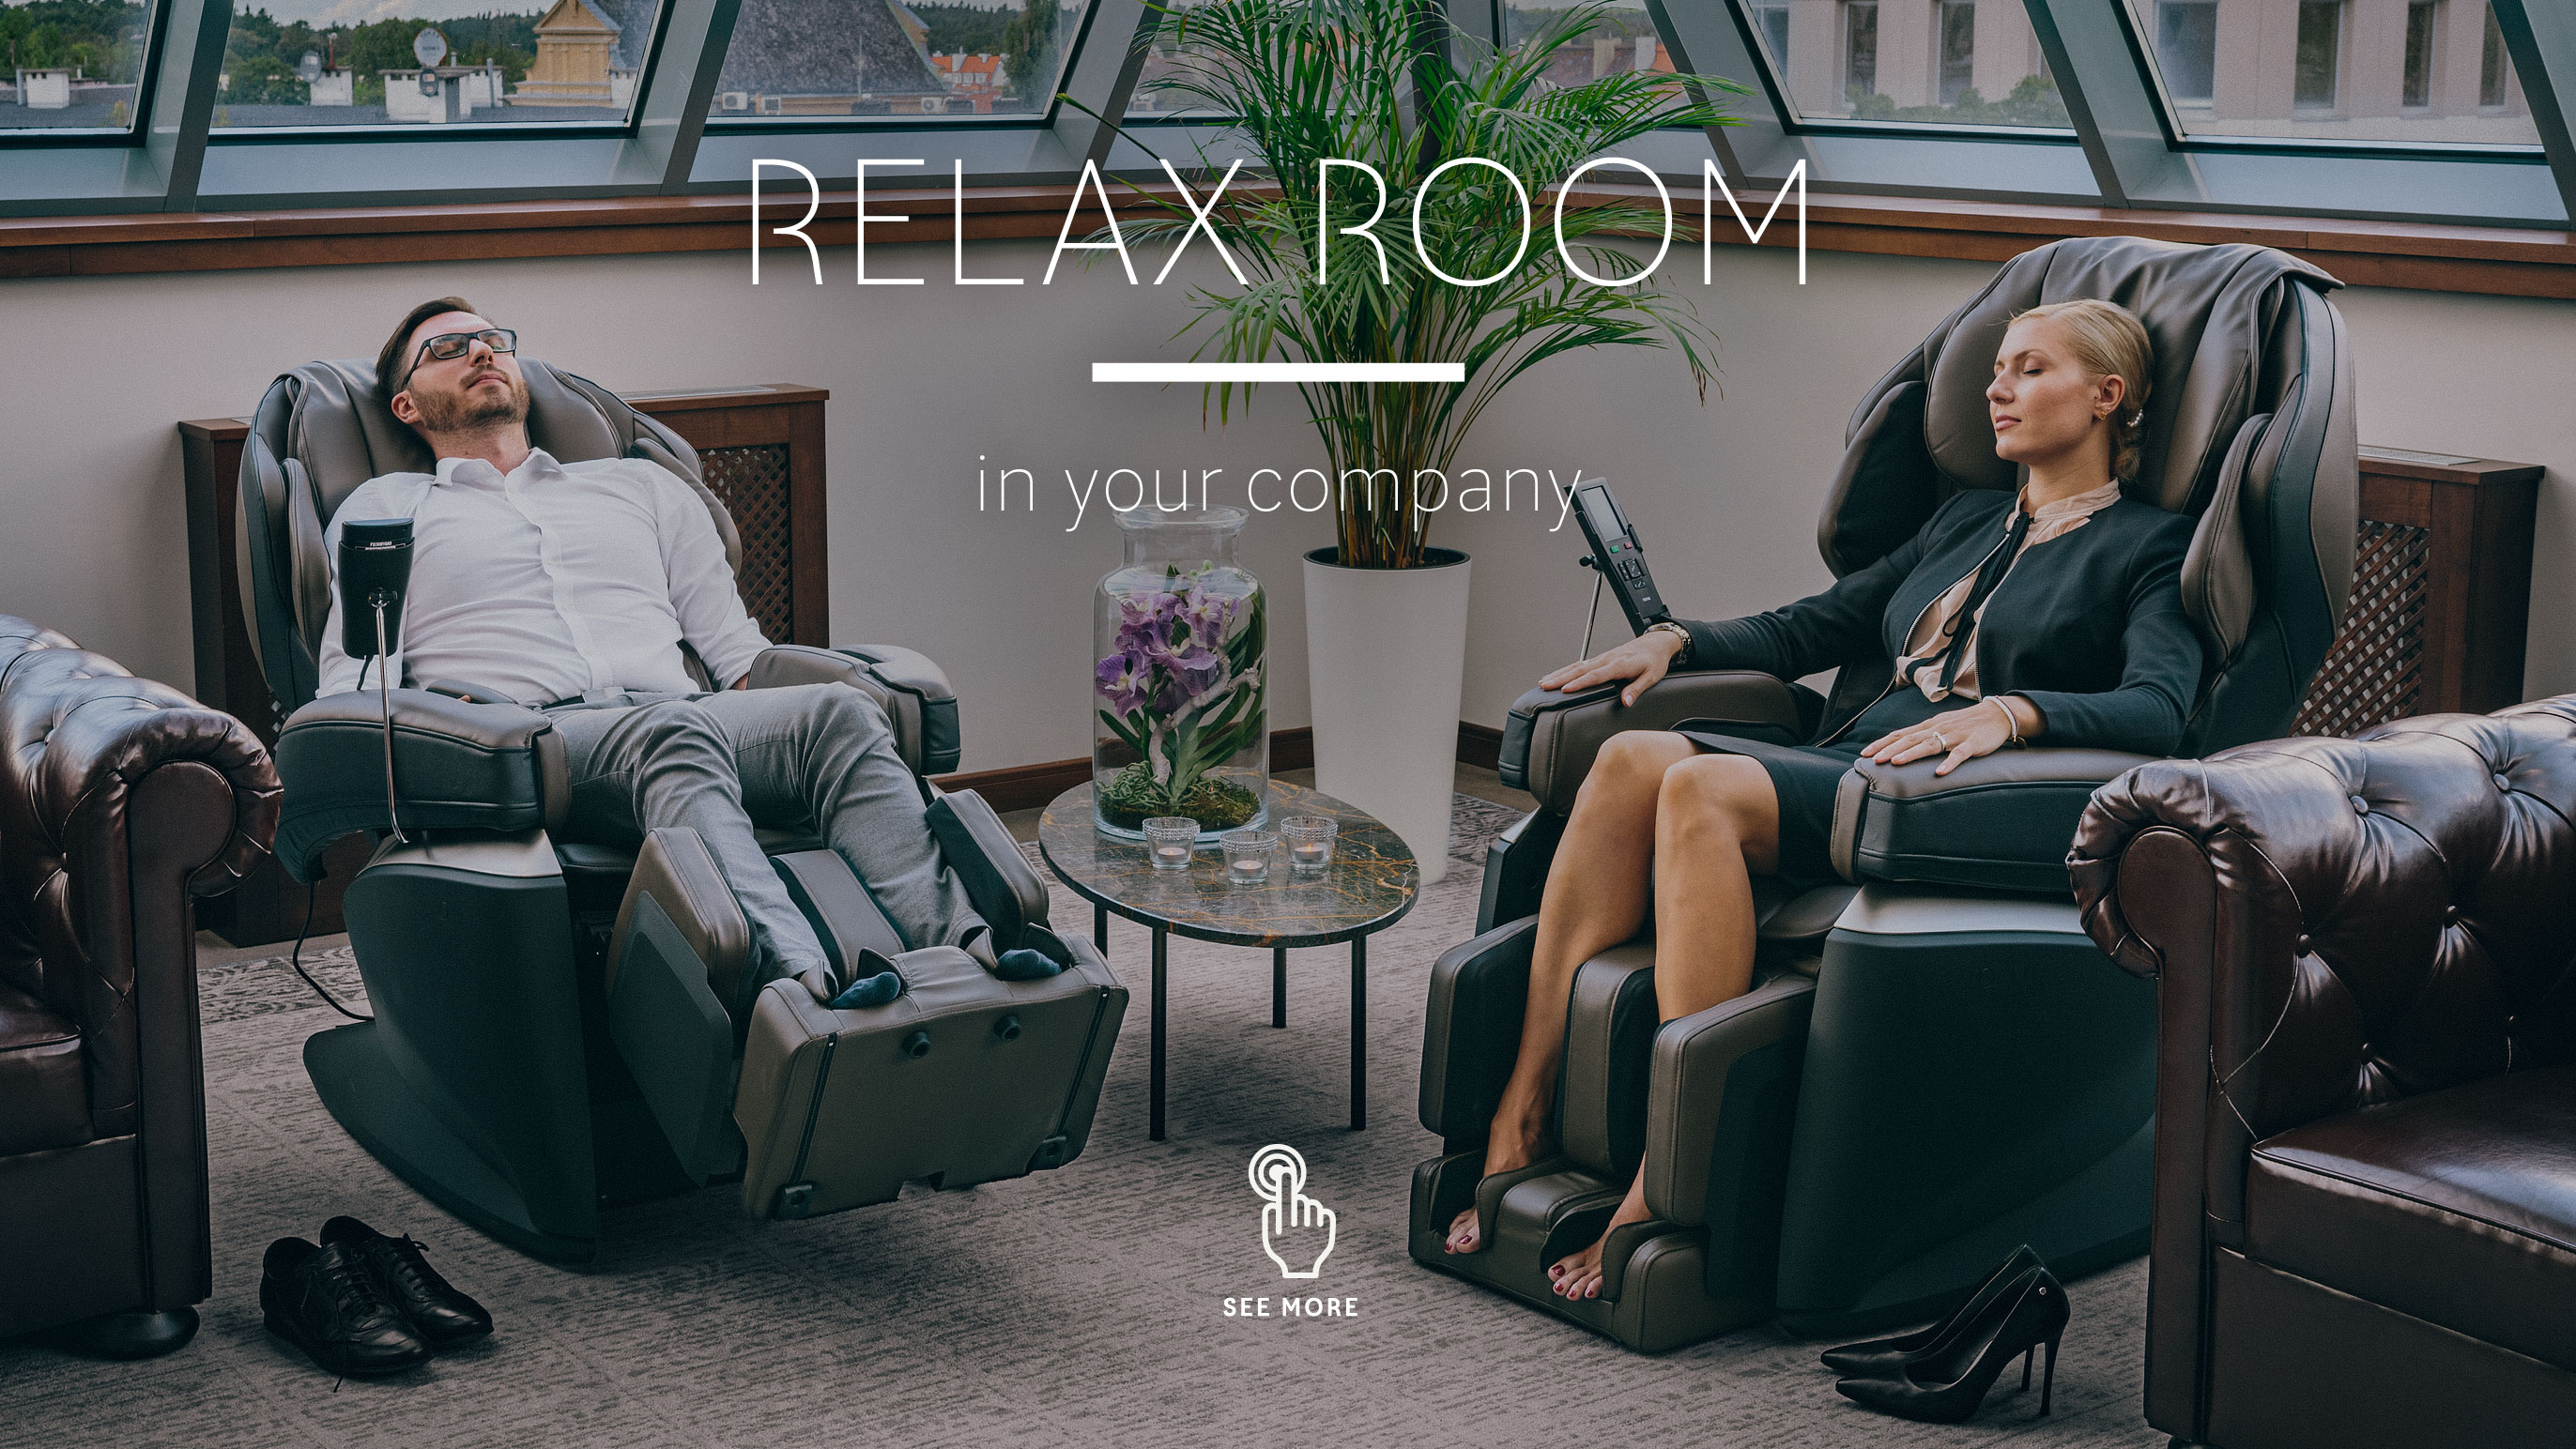 Relax Room massage chair